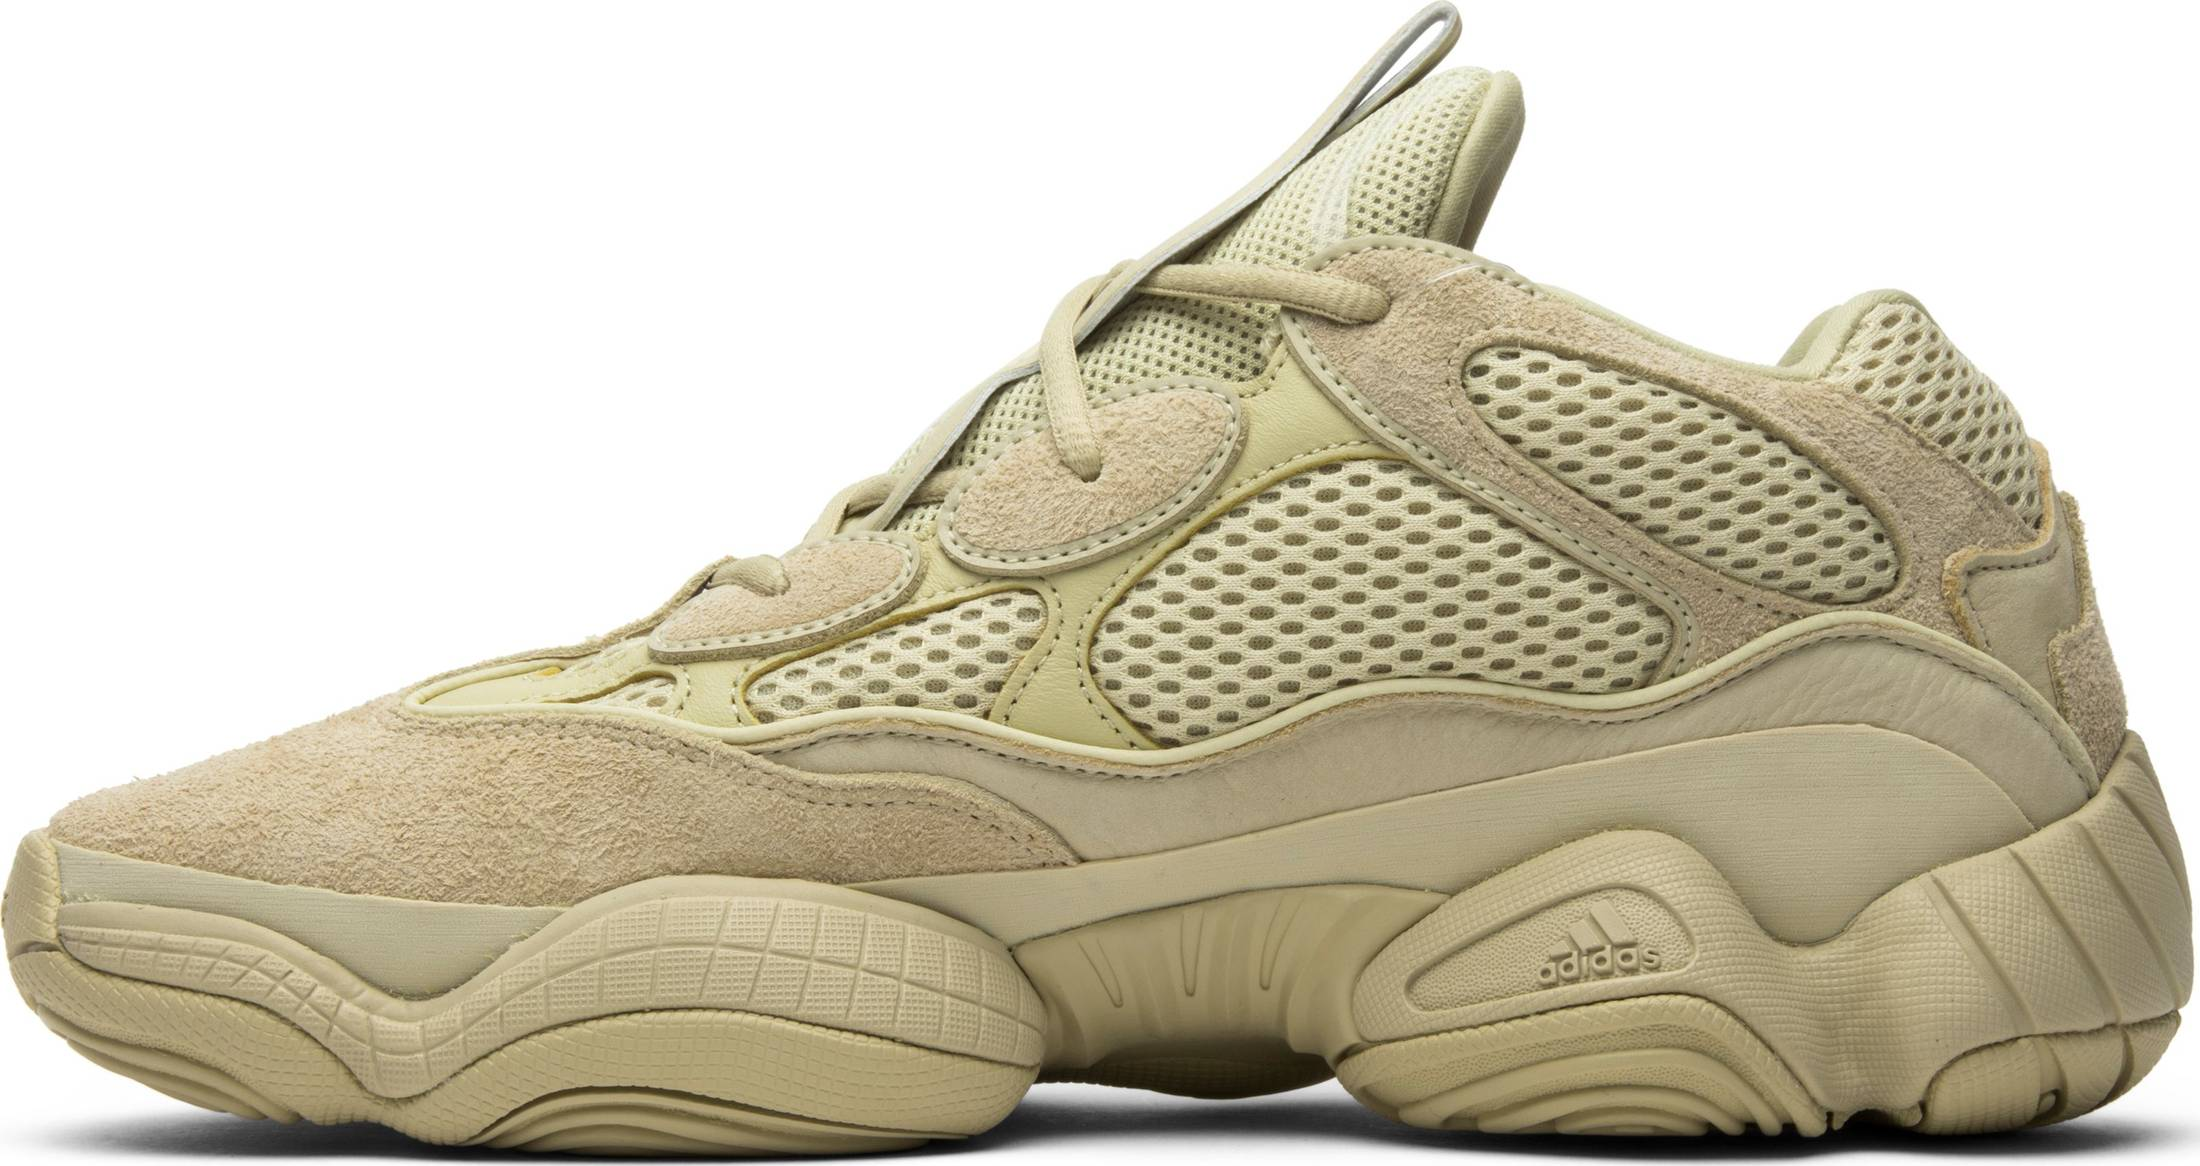 Supermoon Yellow - adidas Yeezy 500 Desert Rat – Elysium Streetwear 42862265d